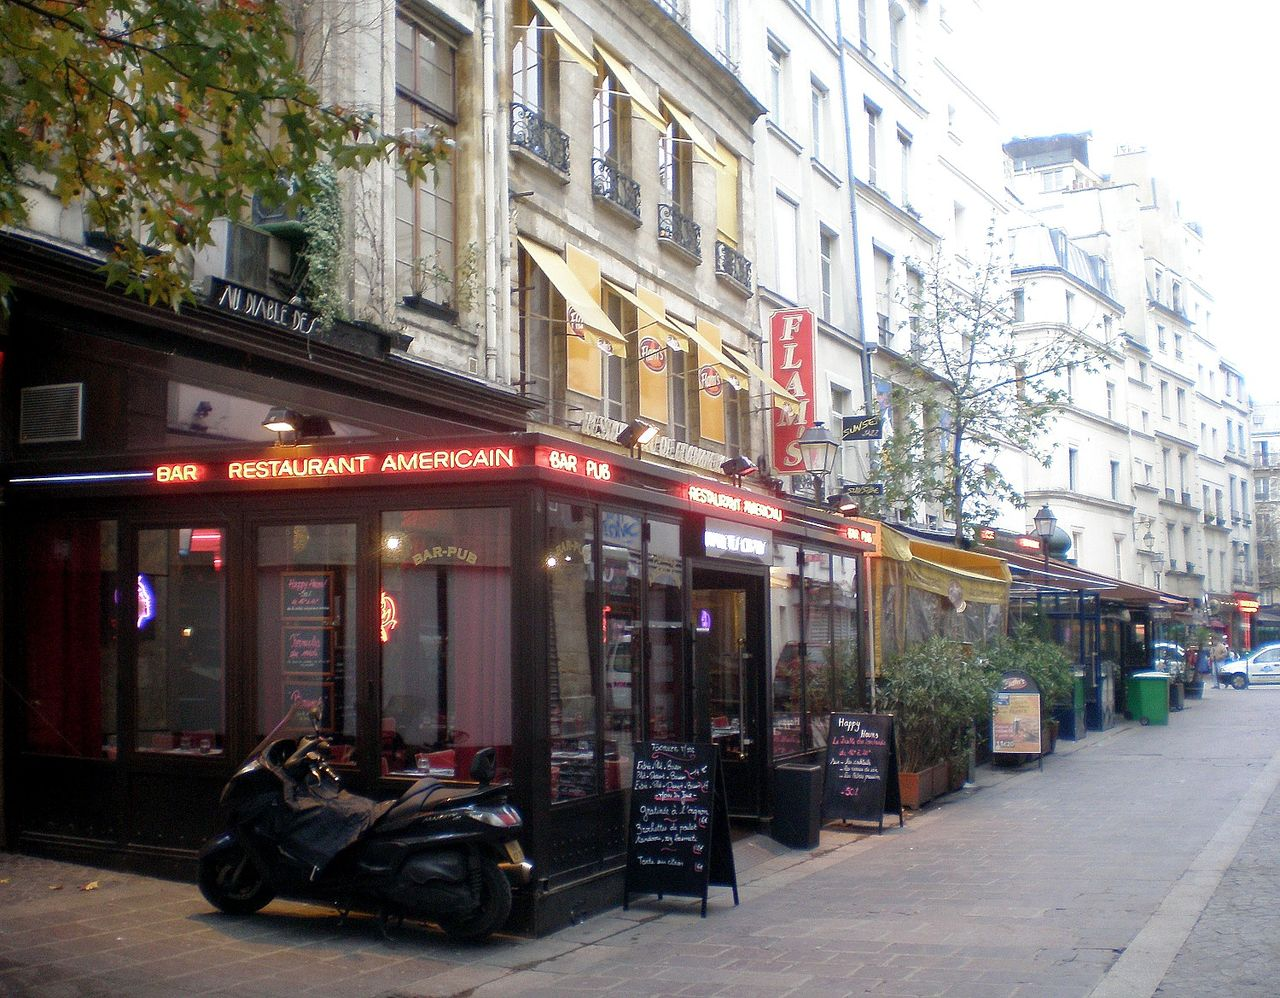 1280px-PC010015_Paris_I_rue_des_Lombards_reductwk.JPG